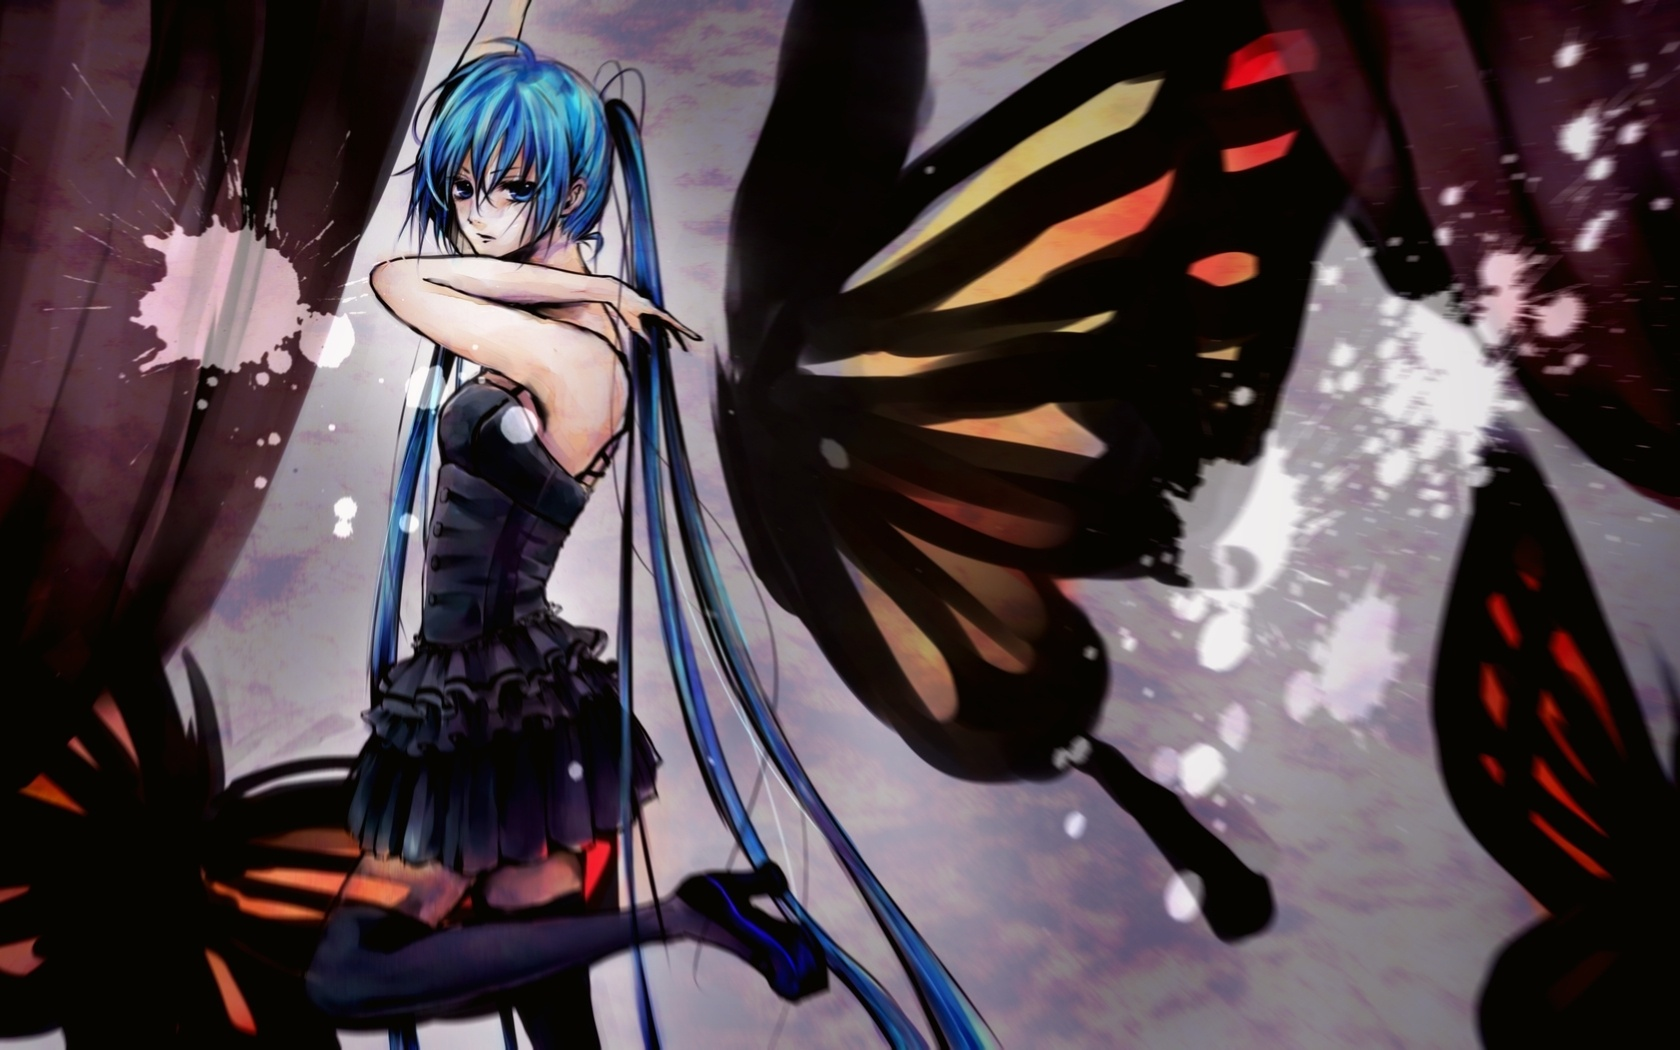 anime wink butterfly wings 4703x3000 wallpaper High Quality ...